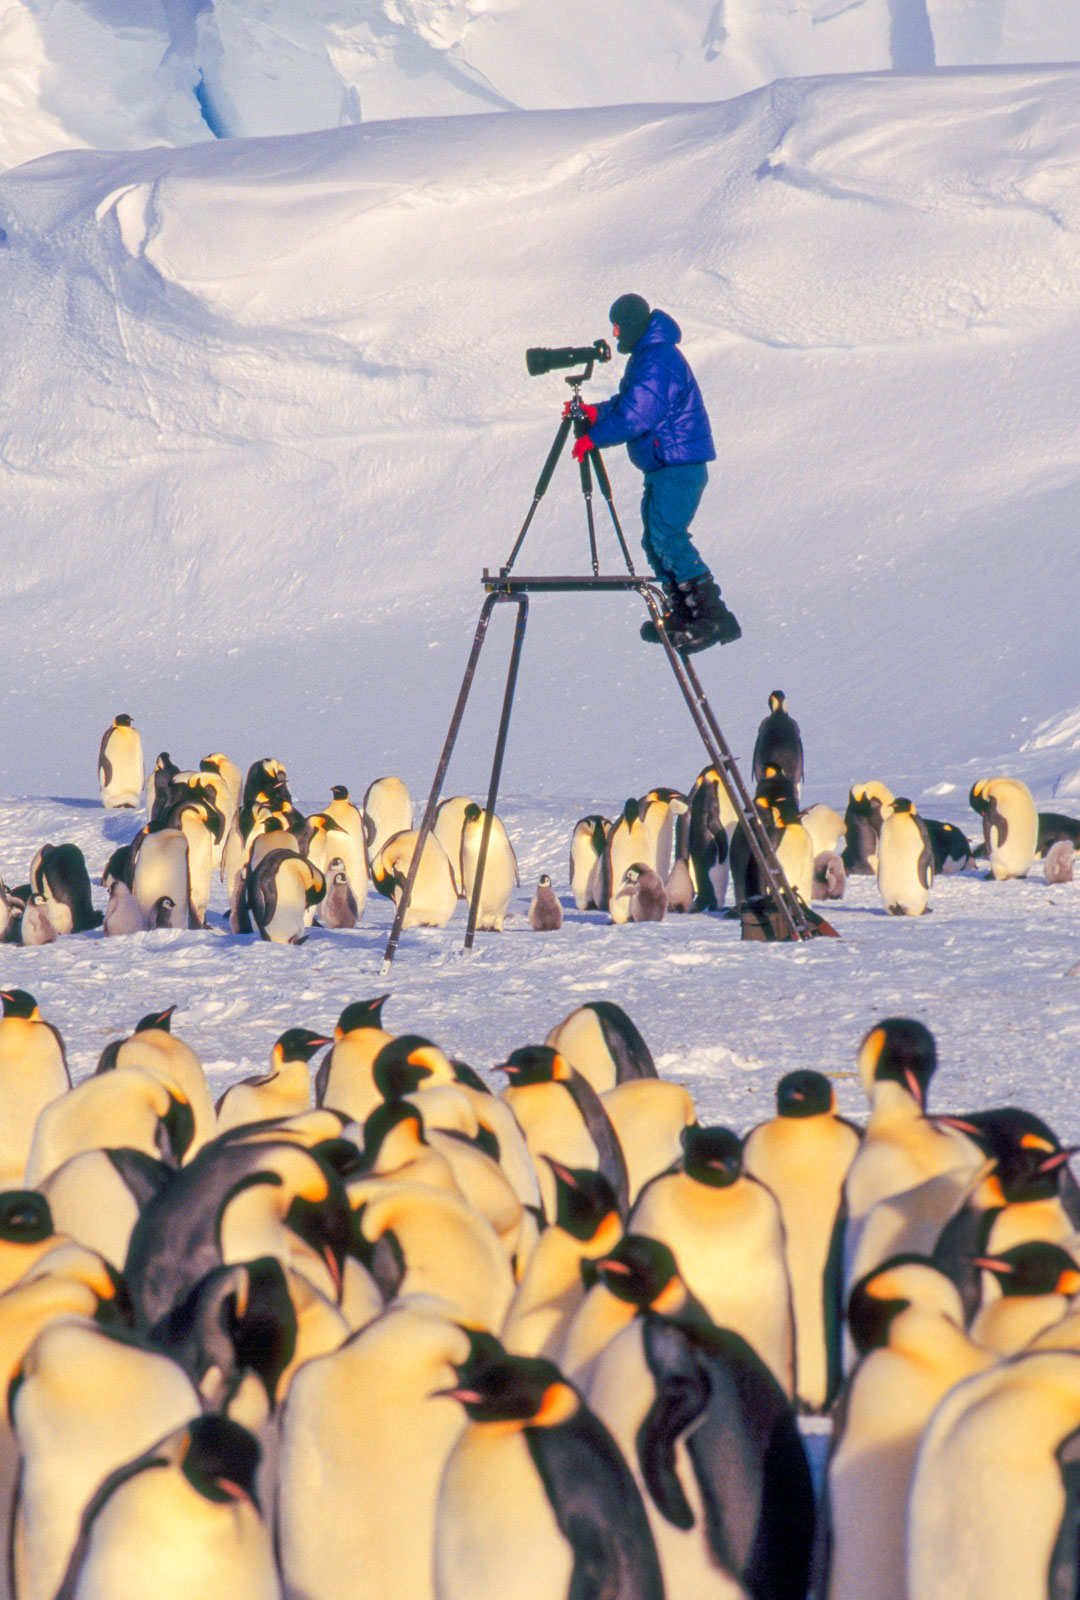 Frans Lanting photographing emperor penguins from scaffold, Antarctica